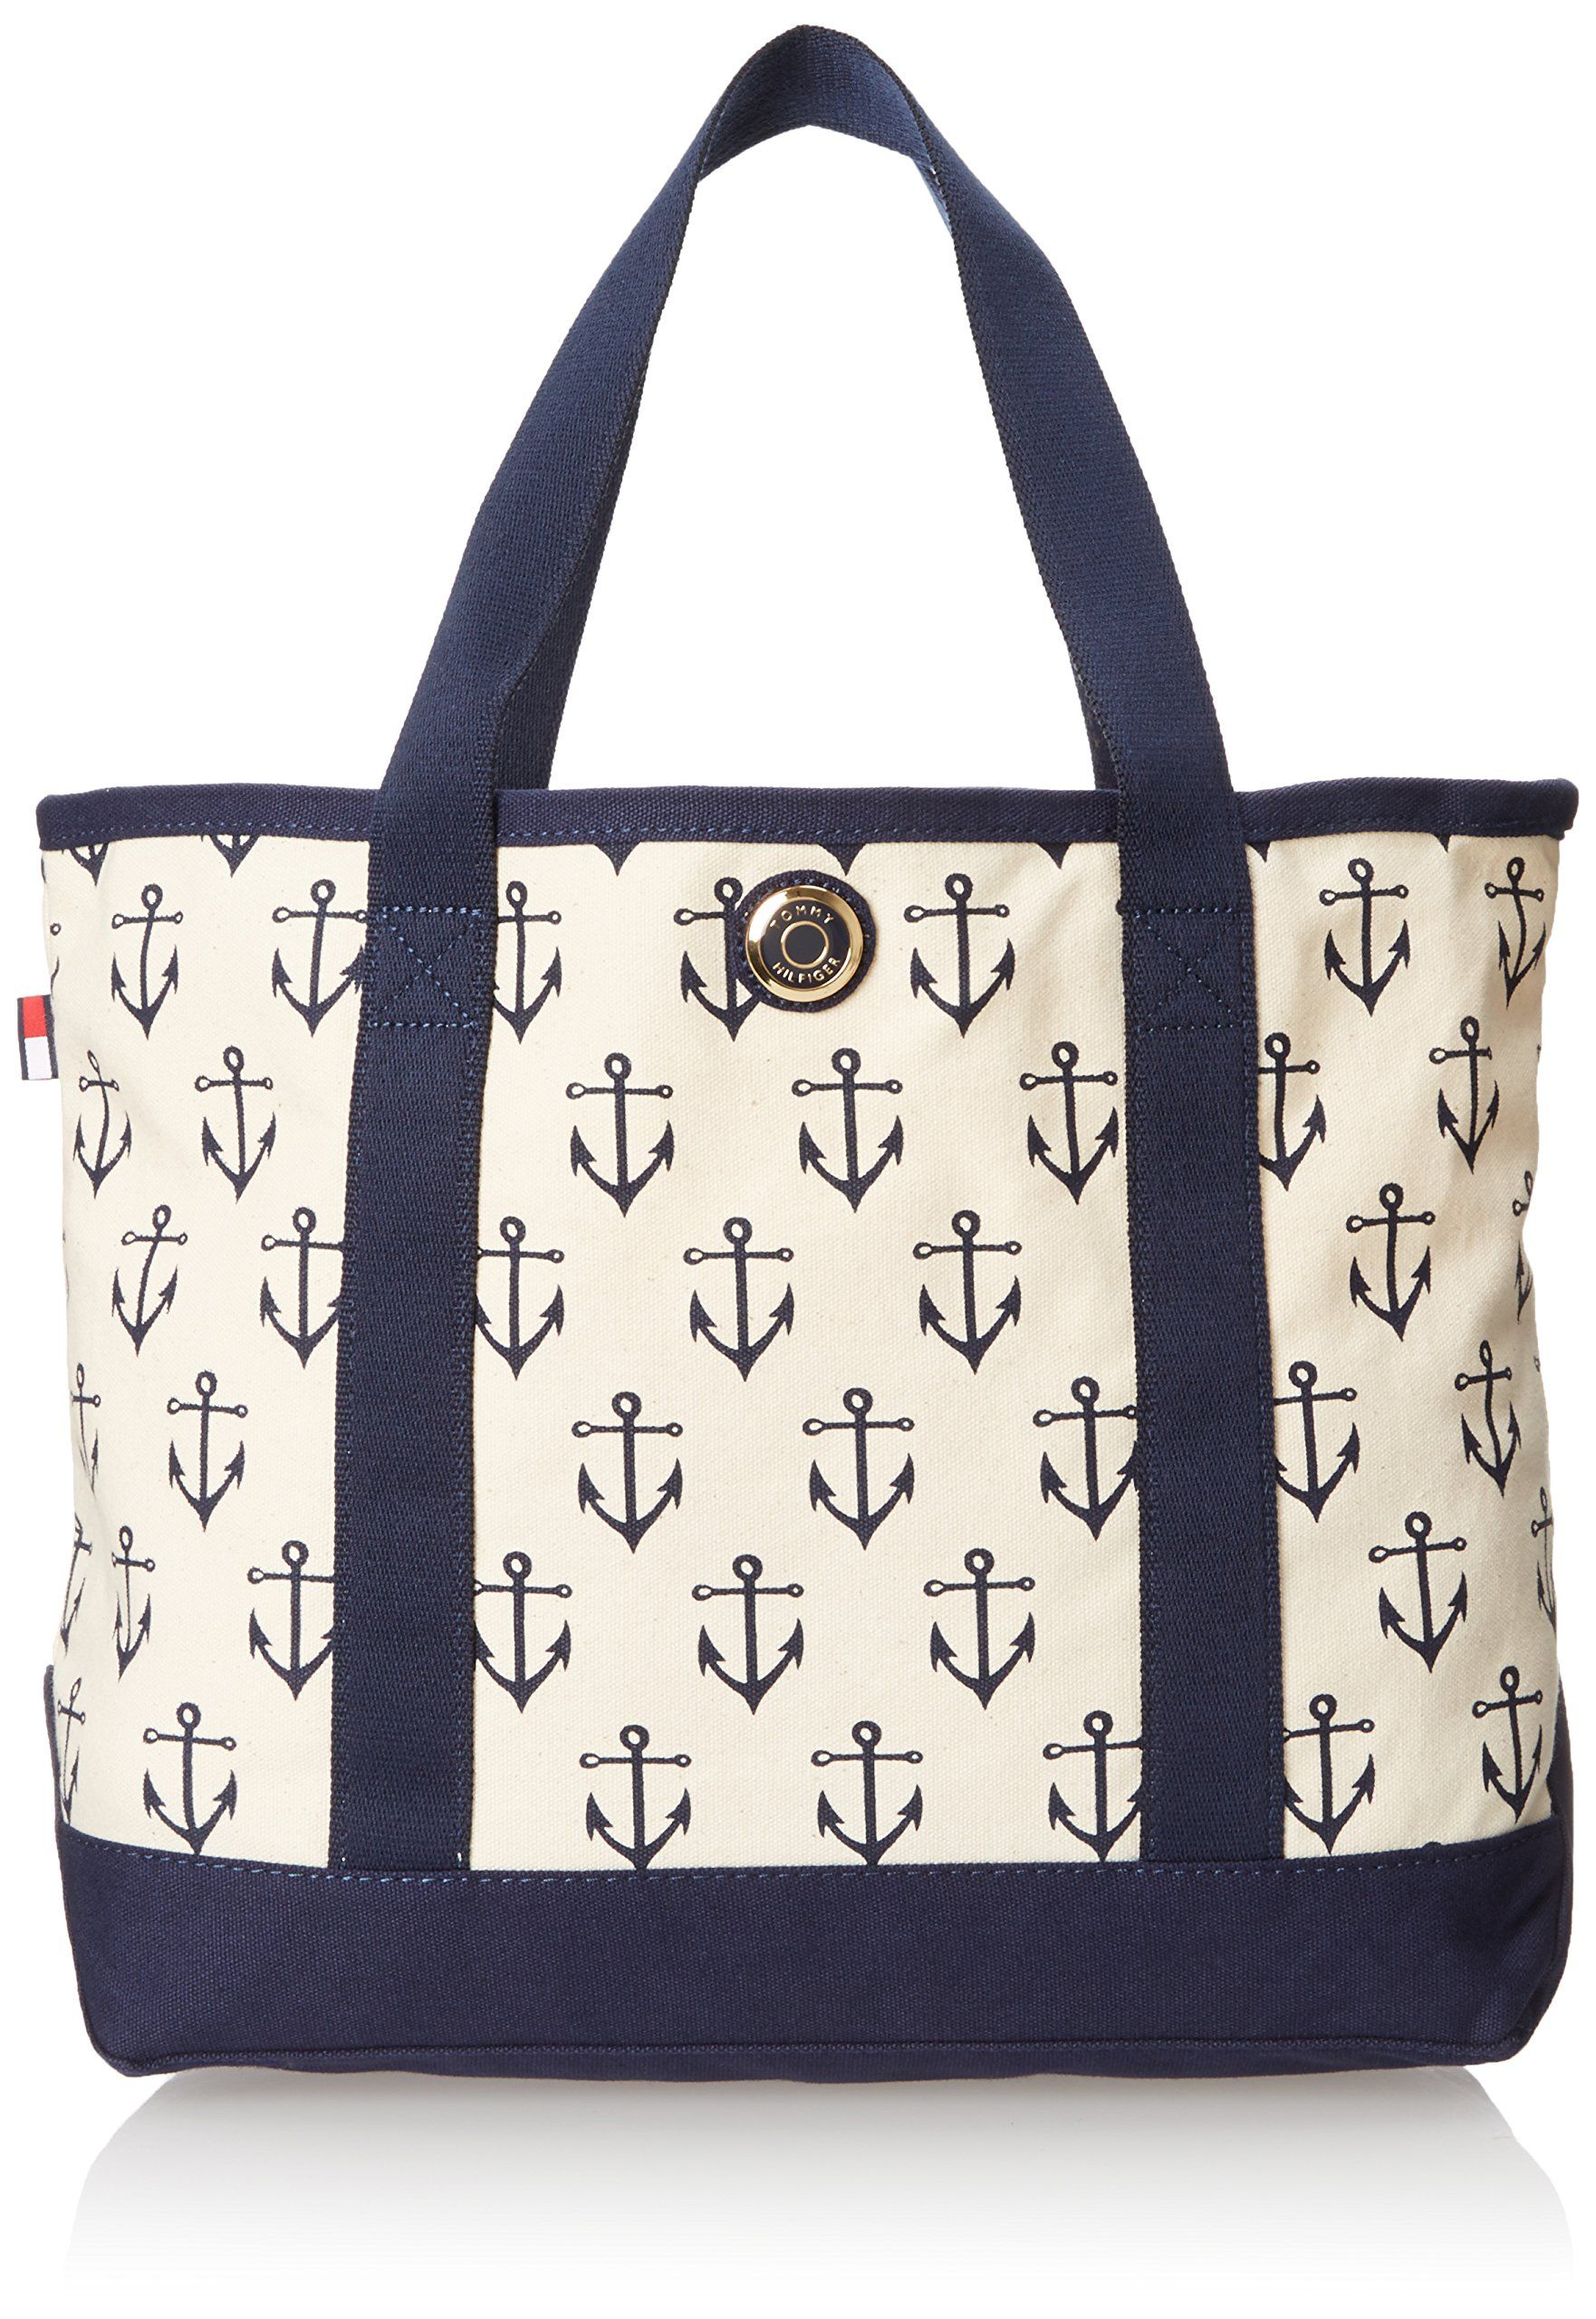 4bce9f8e87 Tommy Hilfiger Canvas Anchor Print Large Shoulder Bag, Navy/Natural, One  Size